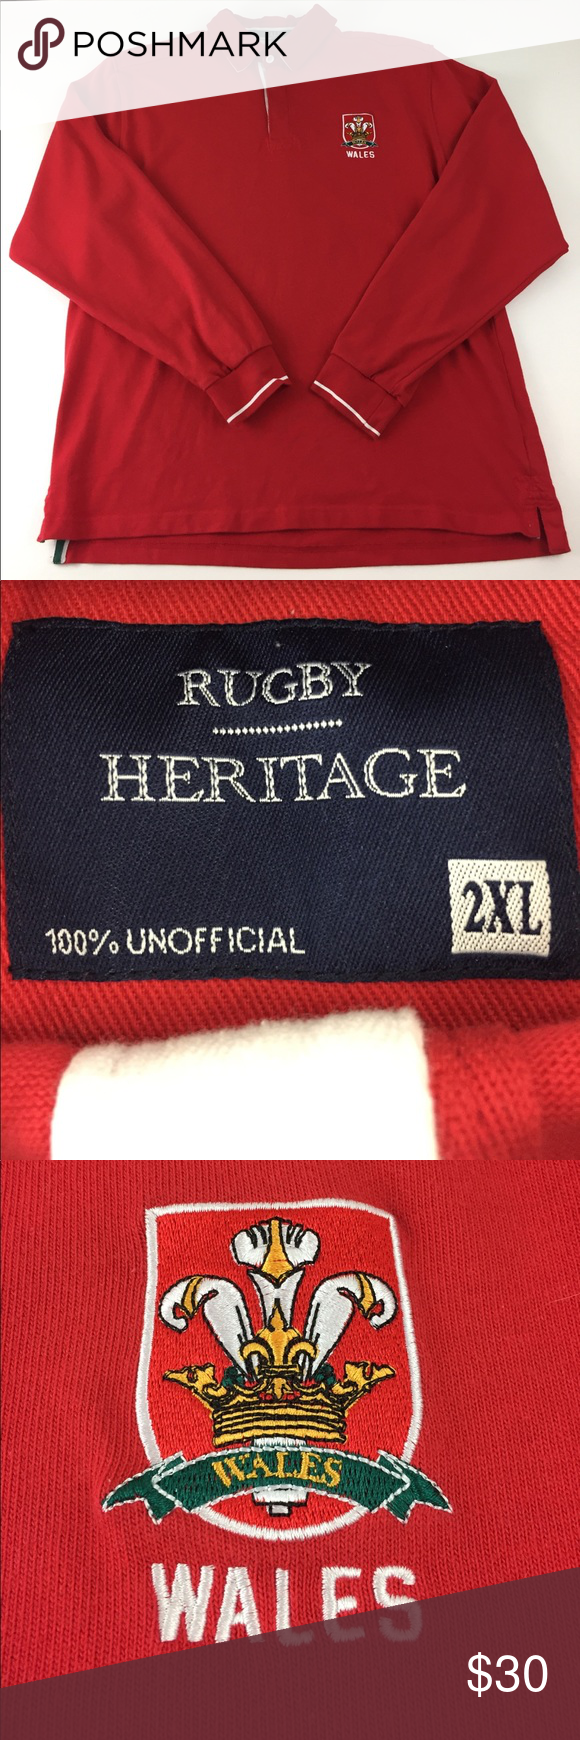 Wales Rugby Shirt R3 Vintage England Wales Rugby Mens 2xl Long